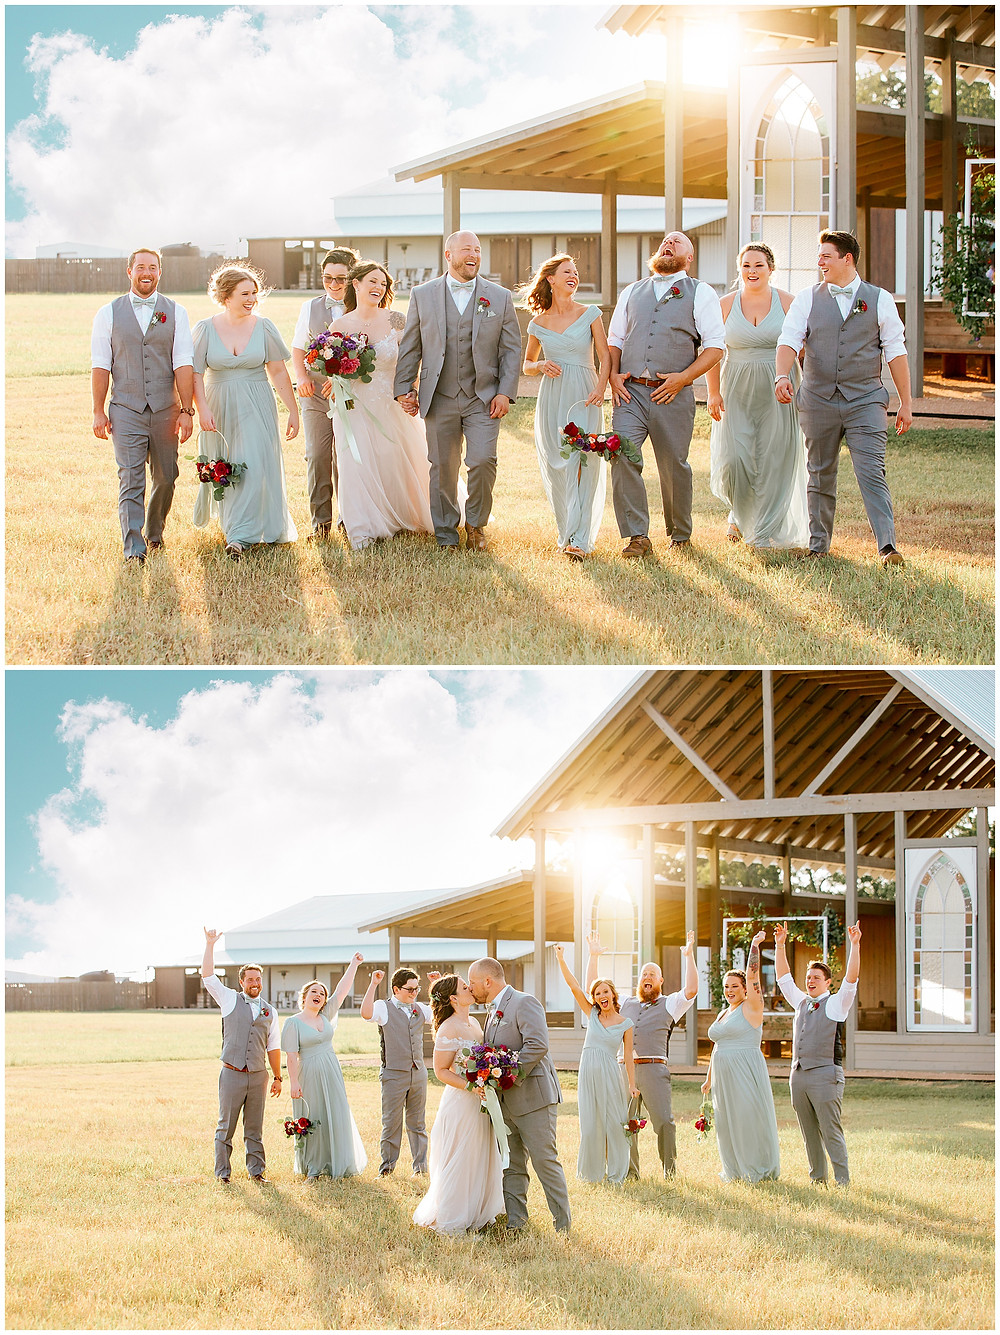 Wedding at The Allen Farmhaus - Snap Chic Photography - San Antonio, New Braunfels and Boerne Wedding Photographer, The Allen Farm Haus